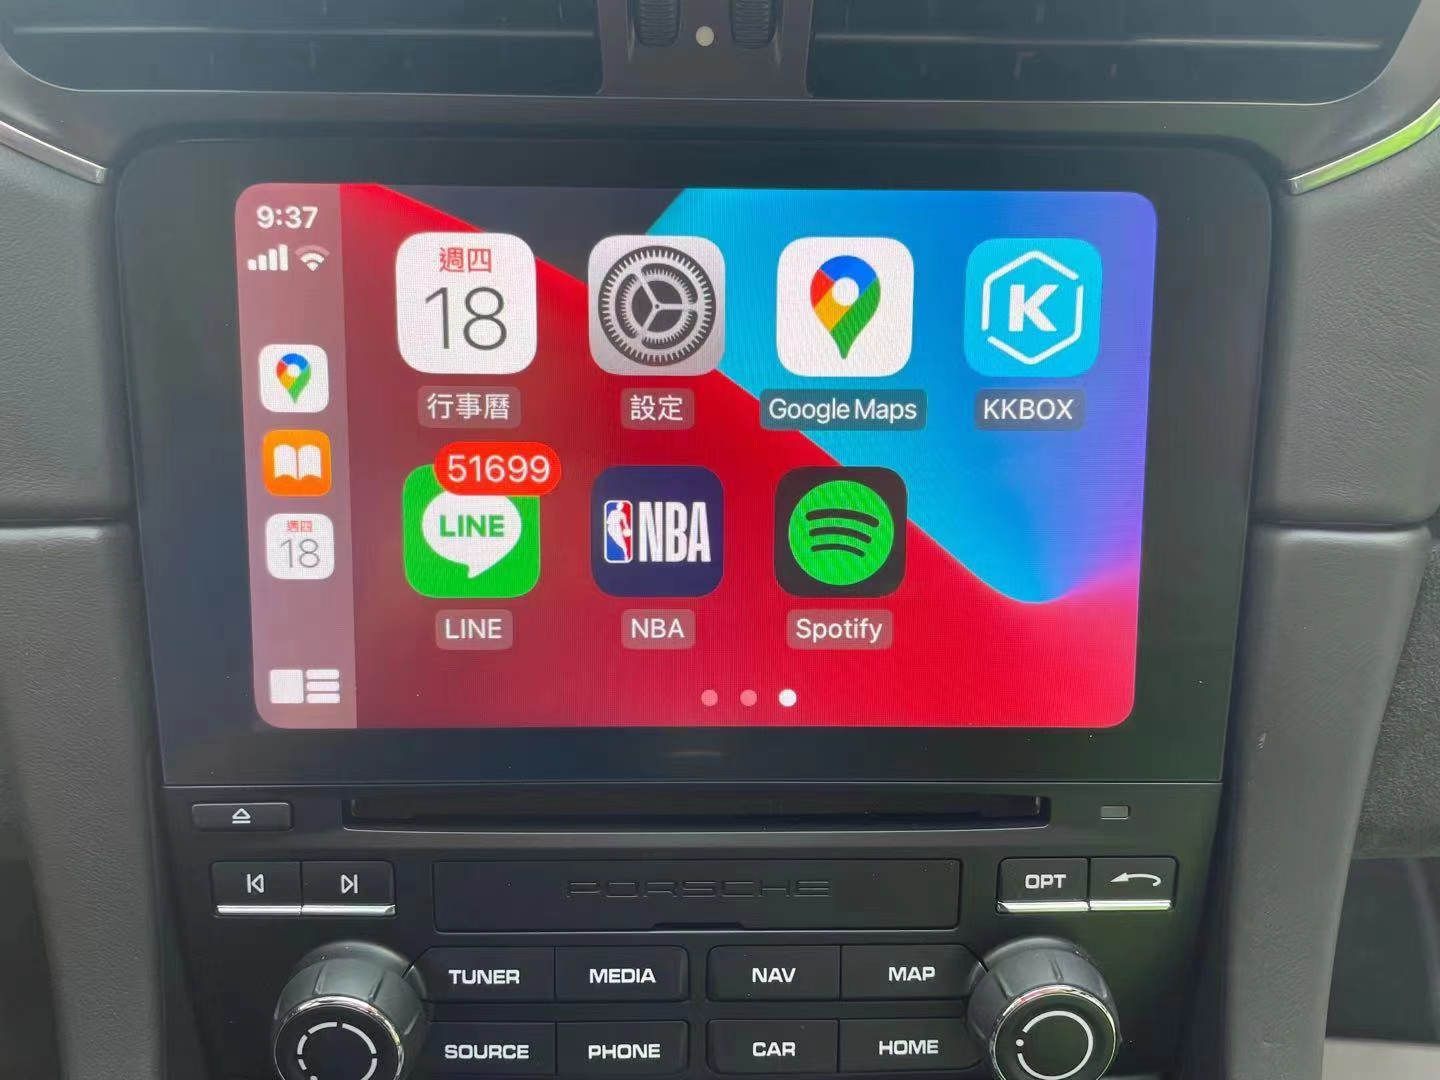 Original CarPlay Android Auto Activate For Porsche Macan Cayenne Panamera 911 Bosxter PCM4.0 Head Unit Remote Activation